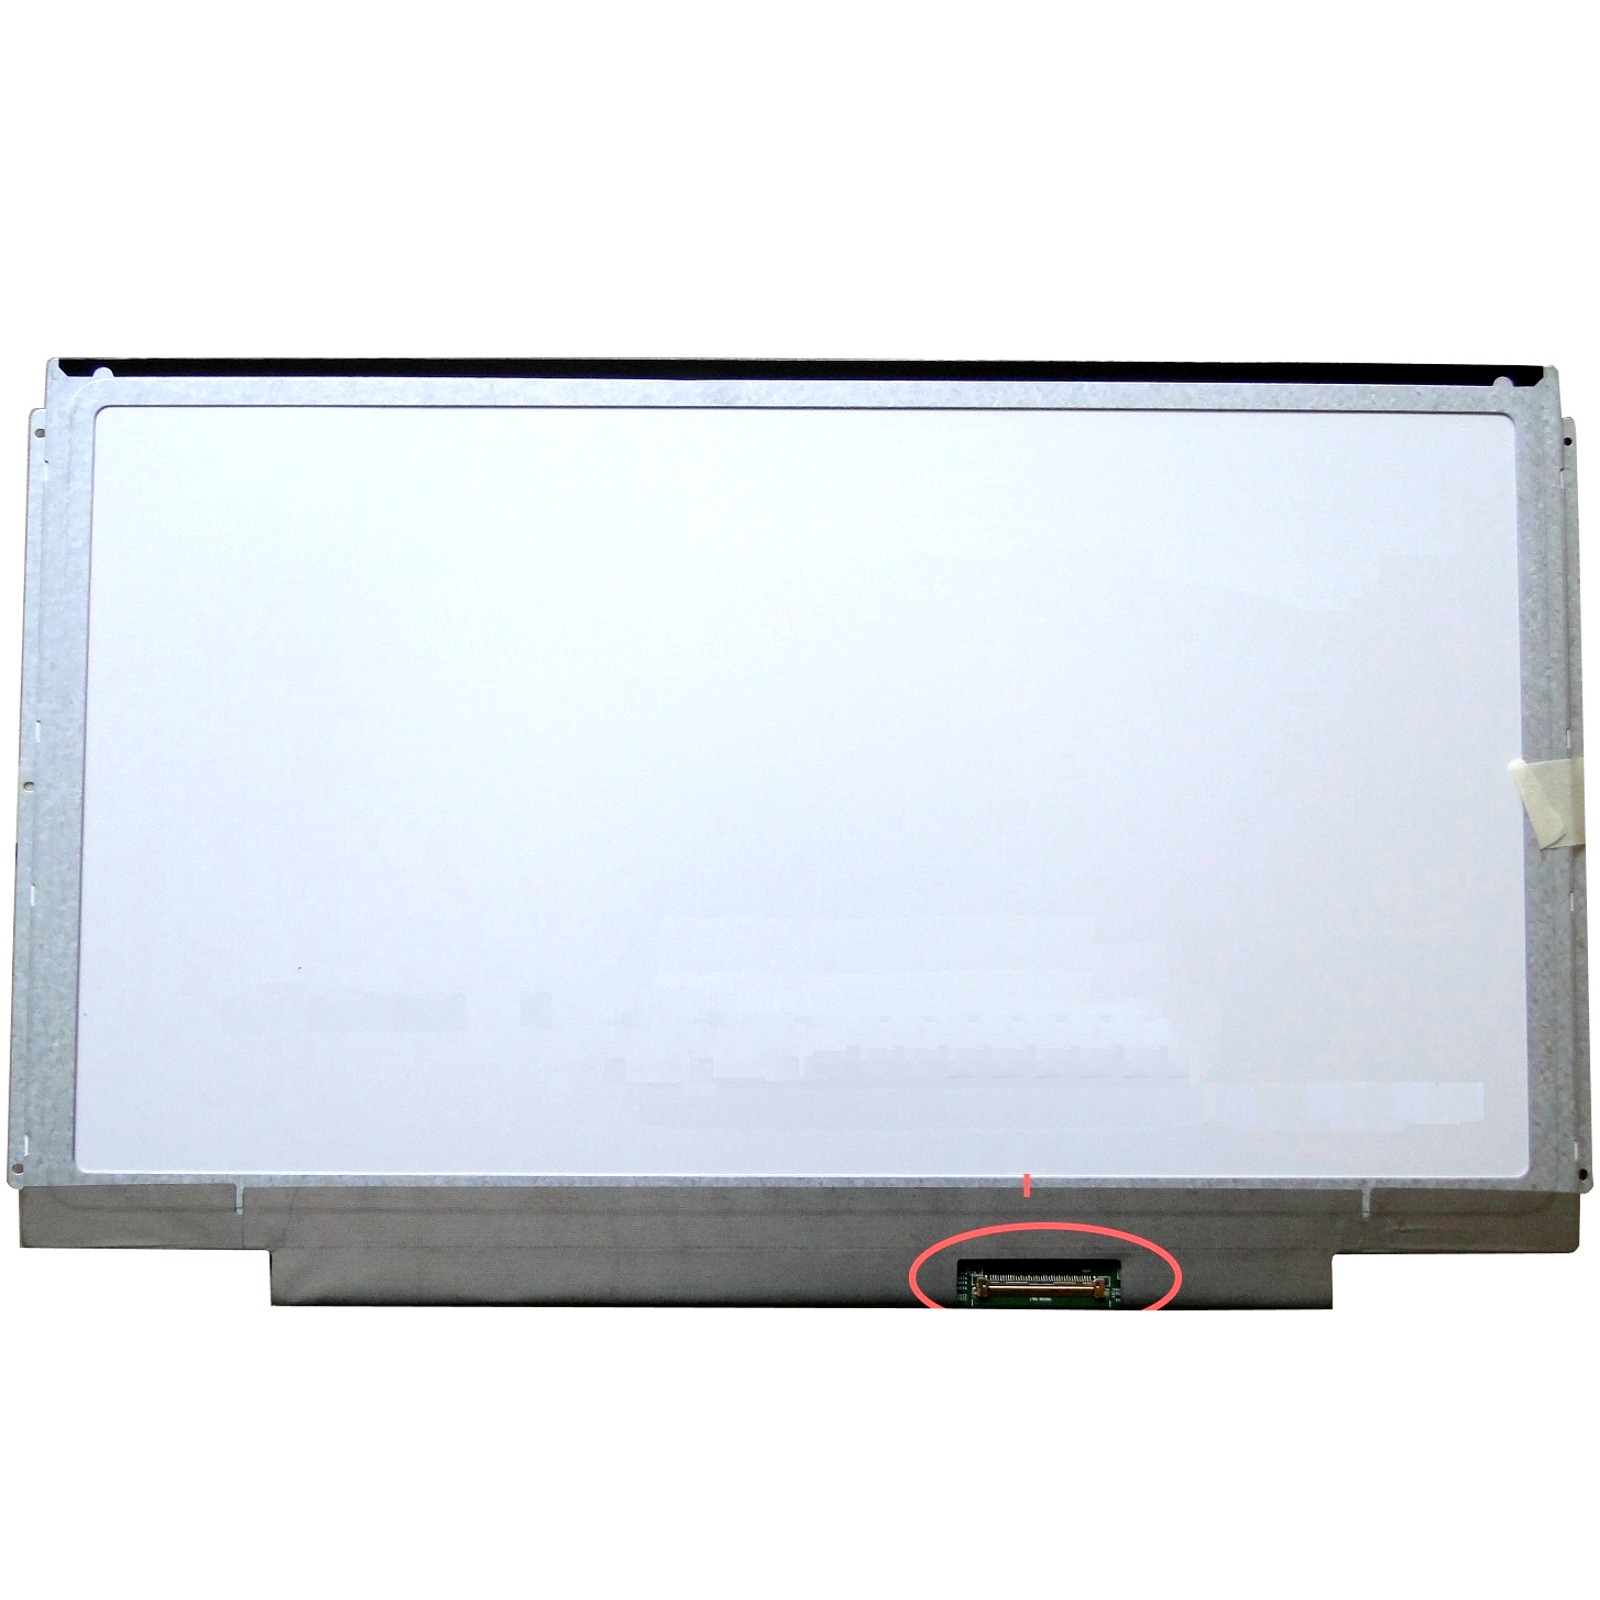 New-LG-LP133WH2-TLM2-13-3-LAPTOP-LED-LCD-SCREEN